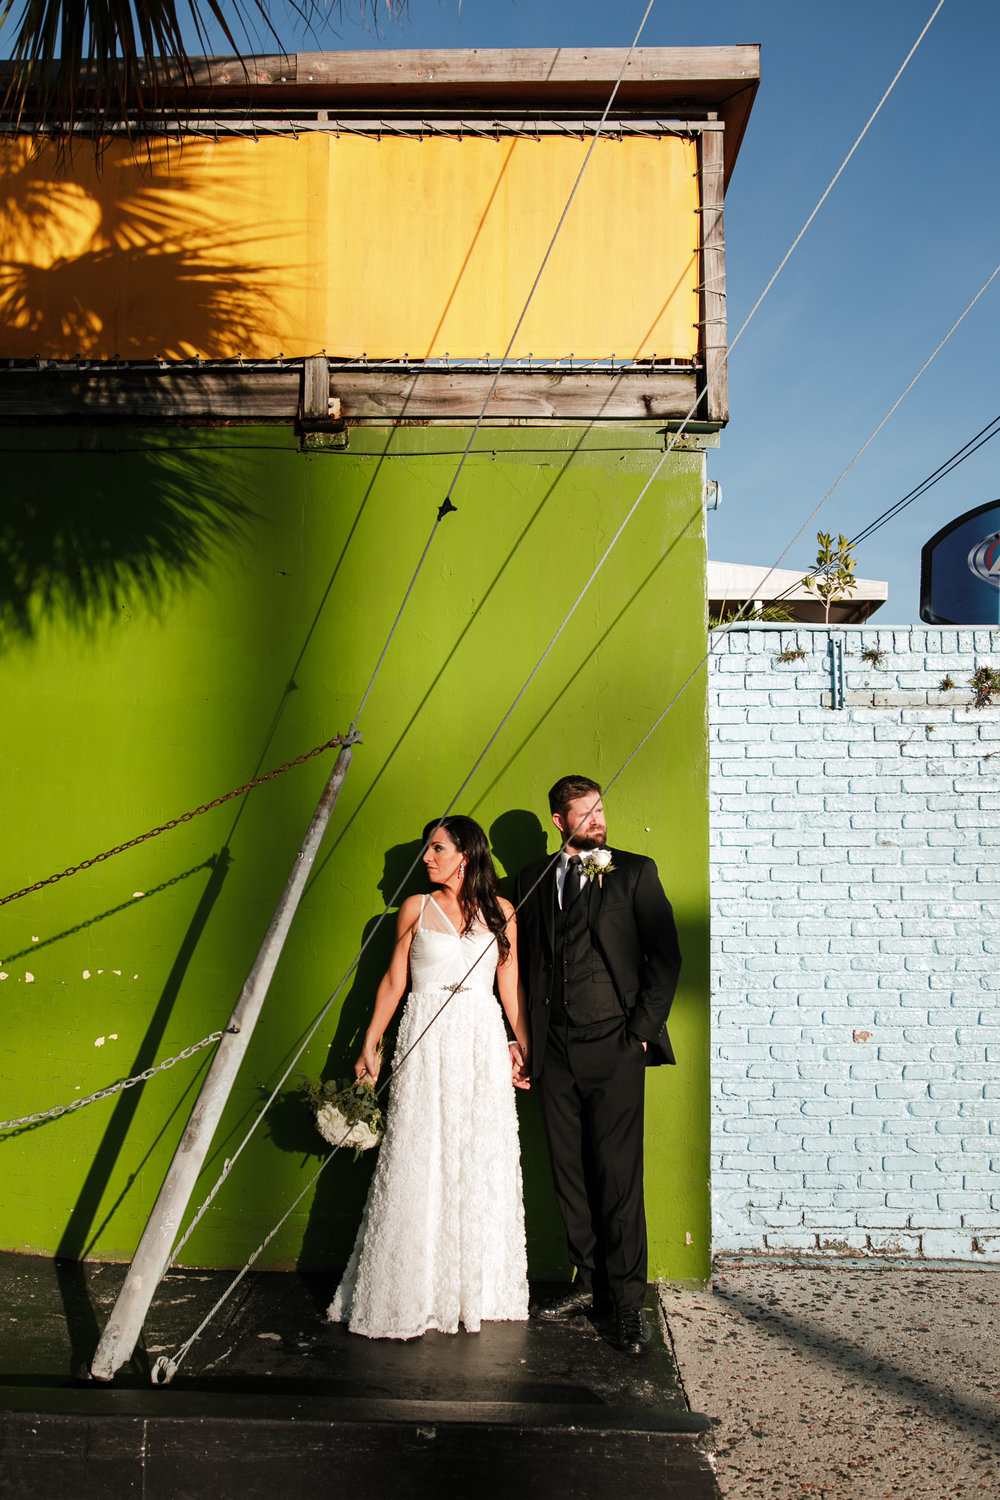 VIEW MORE - DEENA & PHIL | WEDDING AT STACHE WHISKY DEN, FORT LAUDERDALE FLORIDA